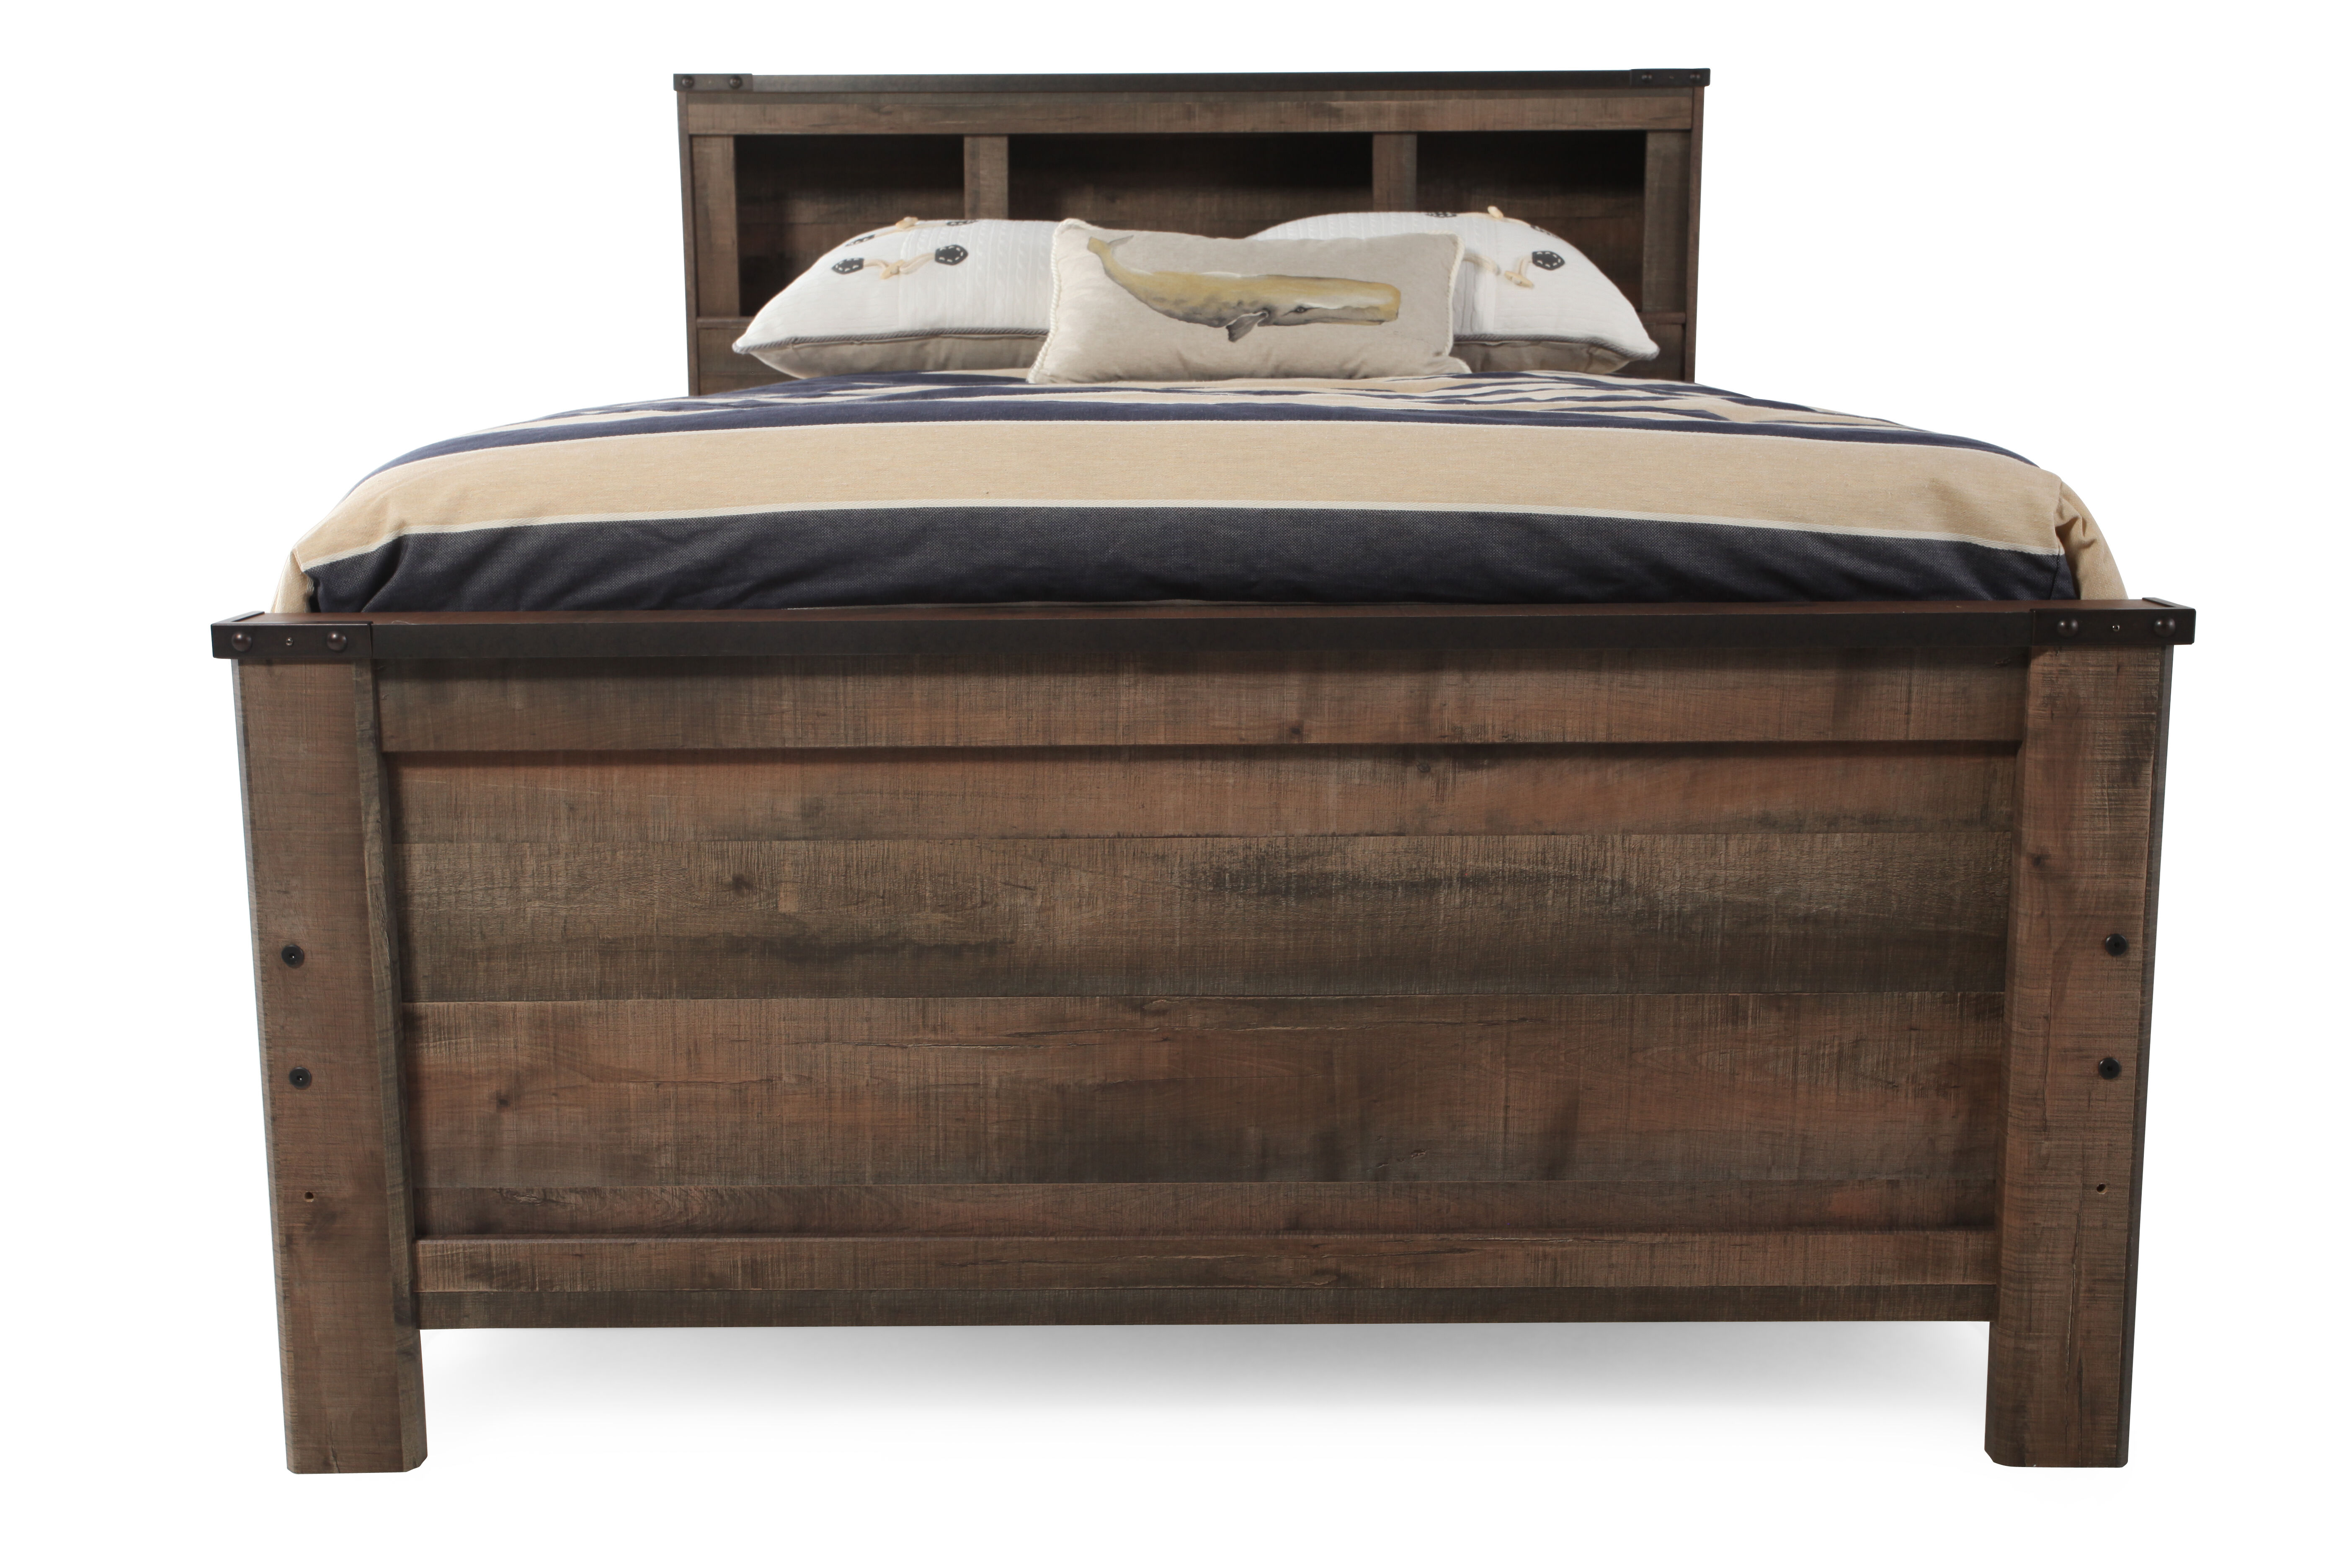 Images Rustic Farmhouse Planked Youth Bookcase Bed In Brownu0026nbsp; Rustic  Farmhouse Planked Youth Bookcase Bed In Brownu0026nbsp;